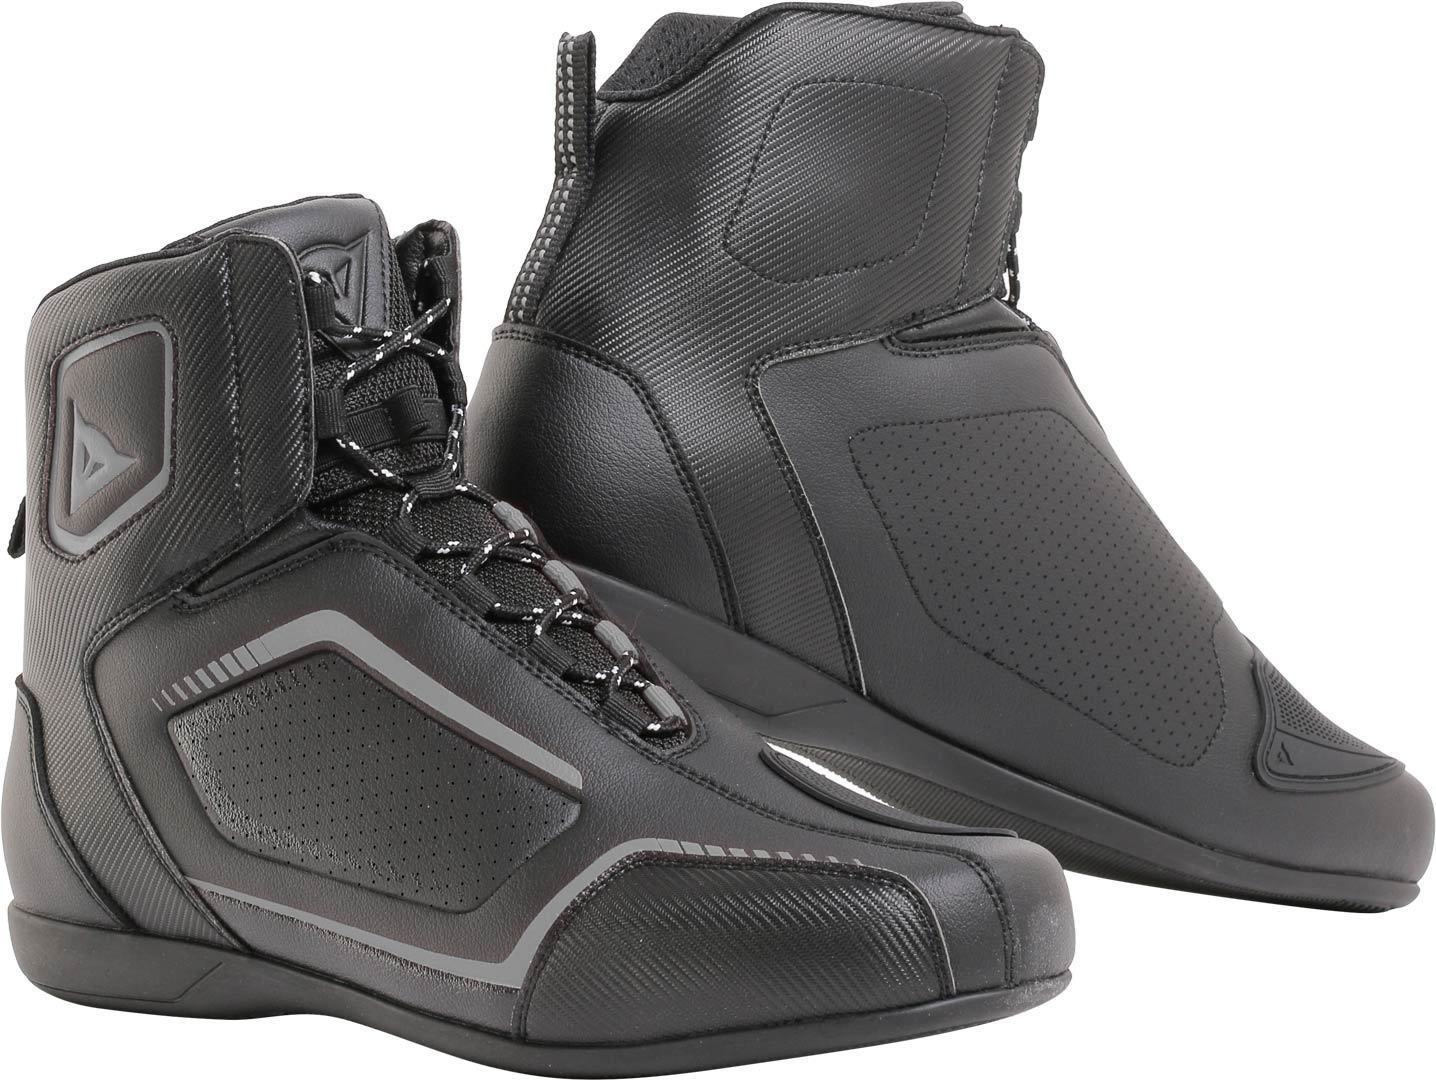 Dainese(ダイネーゼ) RAPTORS AIR SHOES 685-BLACK/BLACK/ANTHRACITE 40 B07D9BF3VX  40